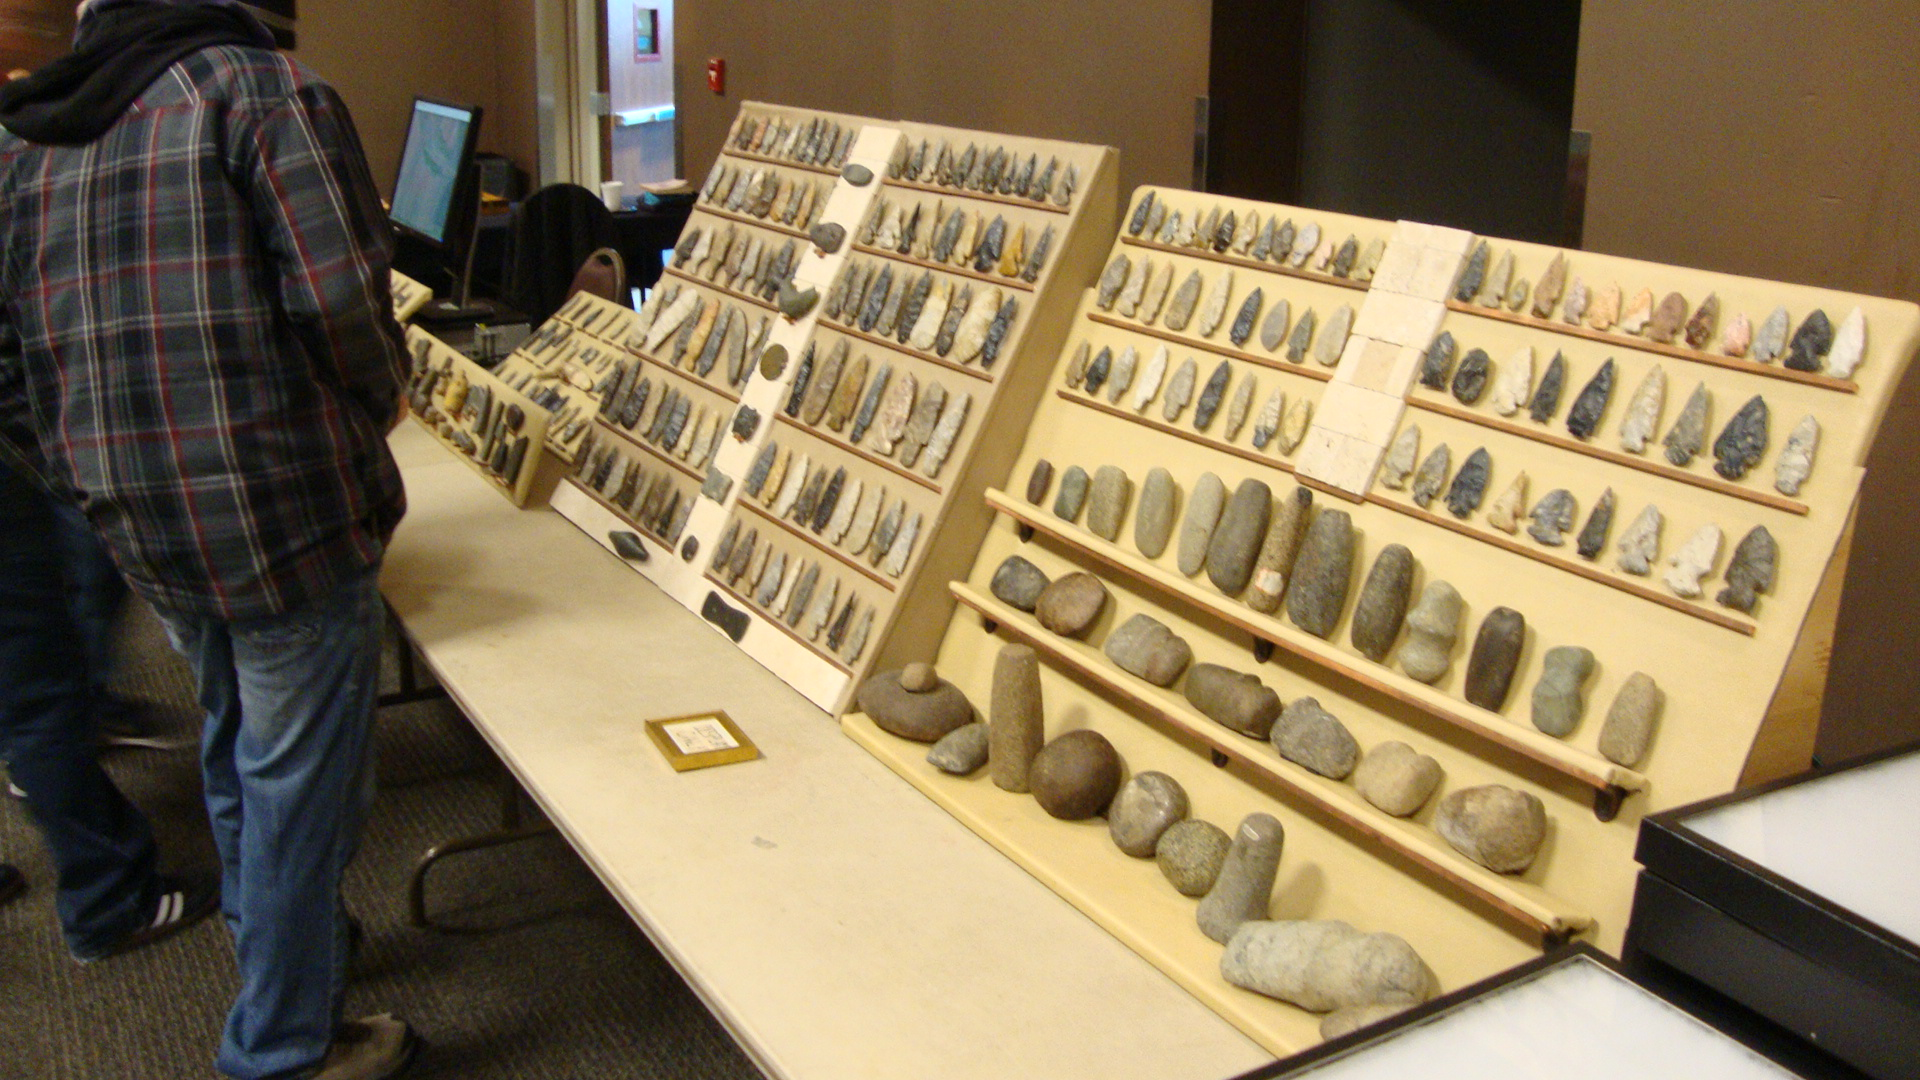 Display of finds from Wayne County by Greg Dush.